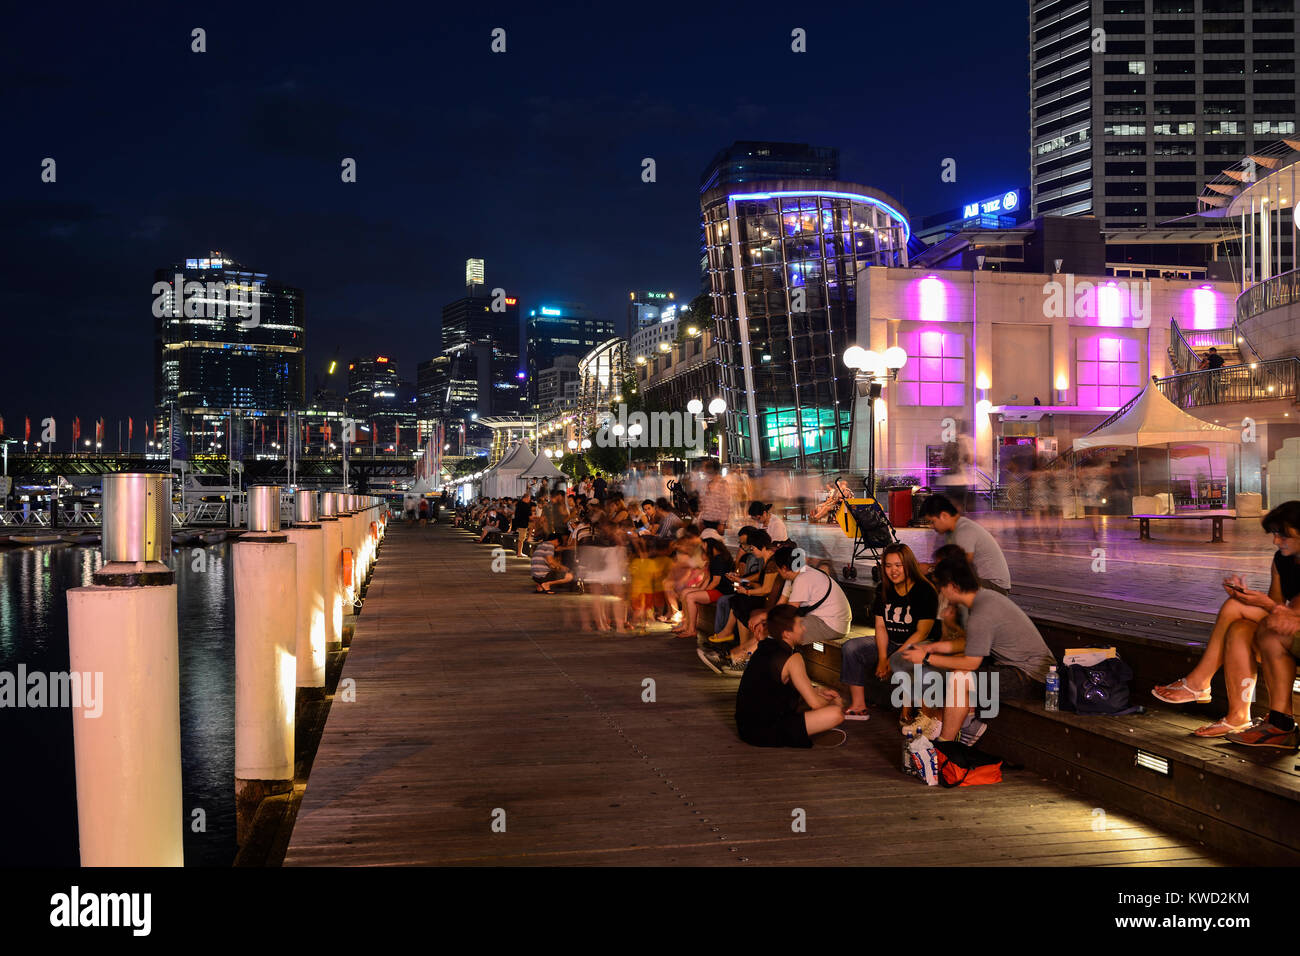 Cockle Bay Wharf in Darling Harbour by night - Sydney, New South Wales, Australia - Stock Image